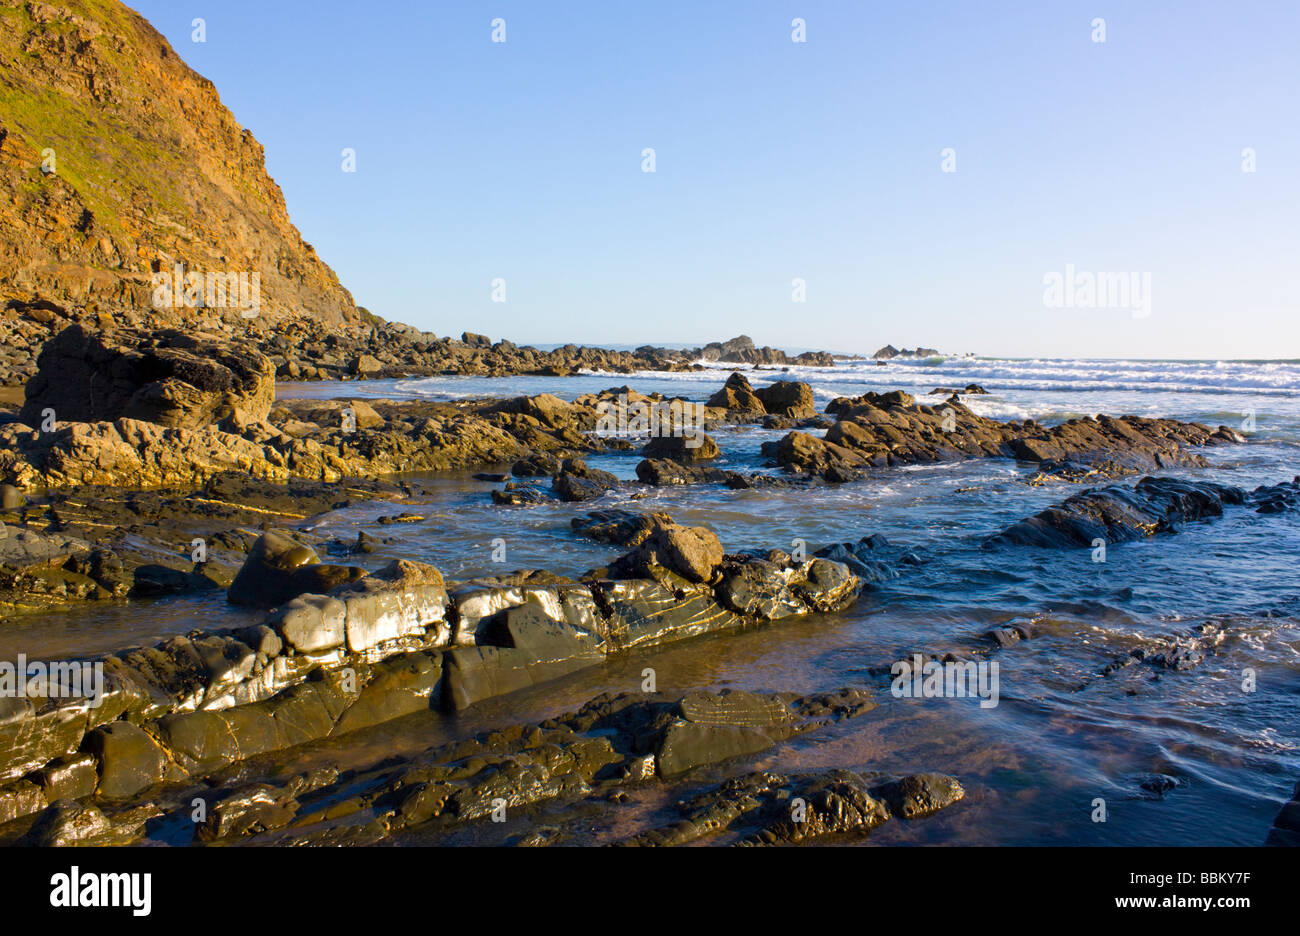 Rocky Duckpool Beach North Cornwall England UK - Stock Image